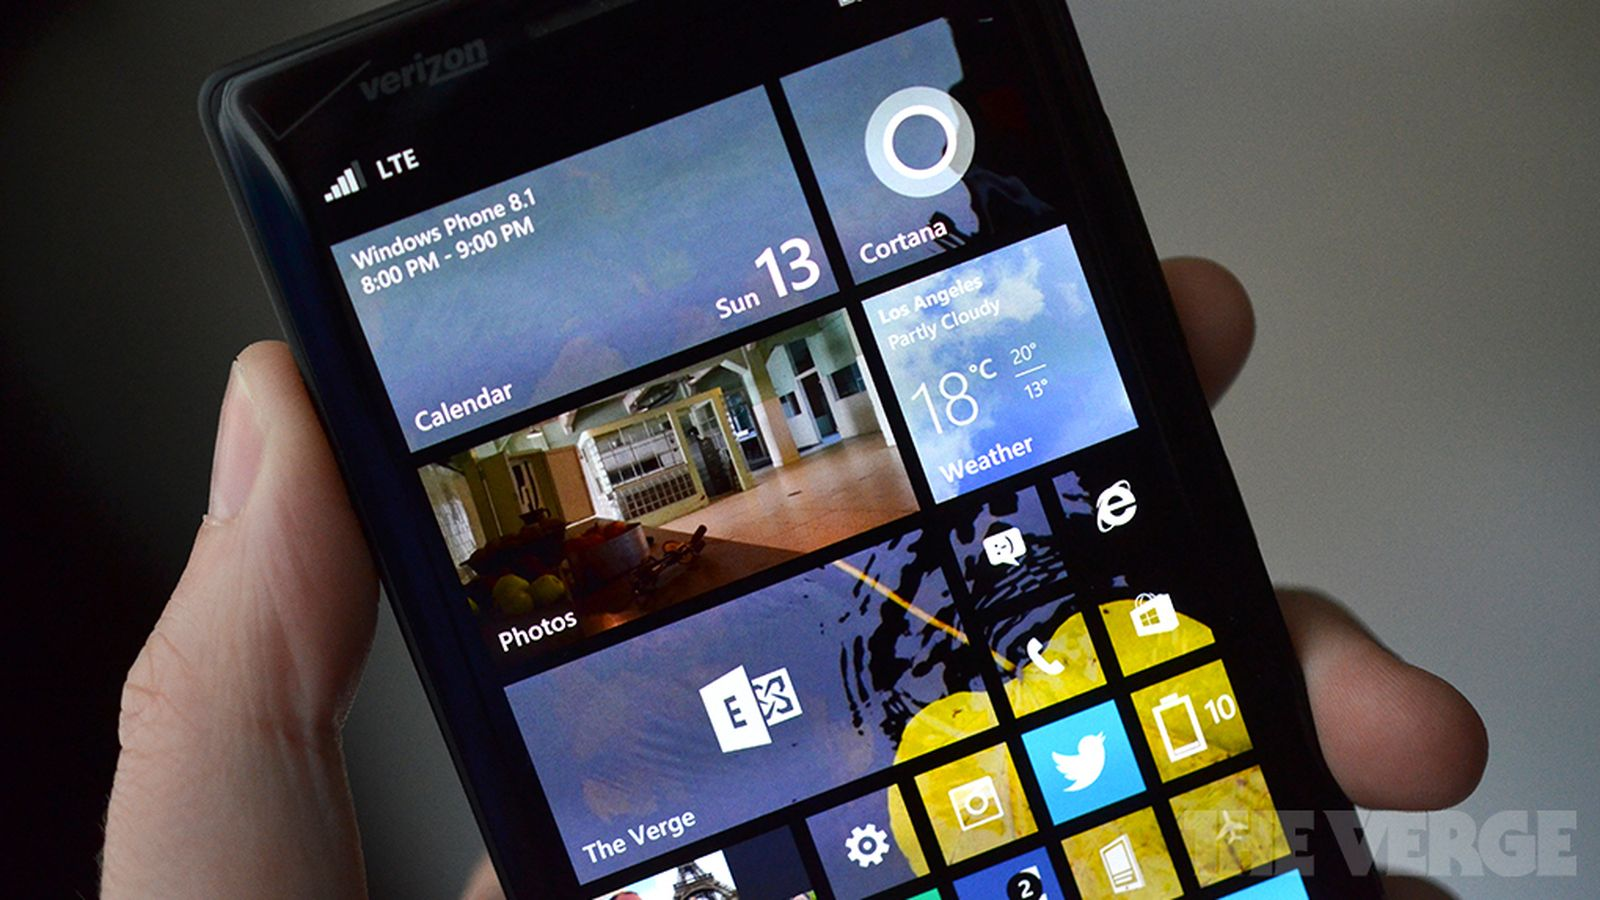 windowsphone81stock1_1020.0